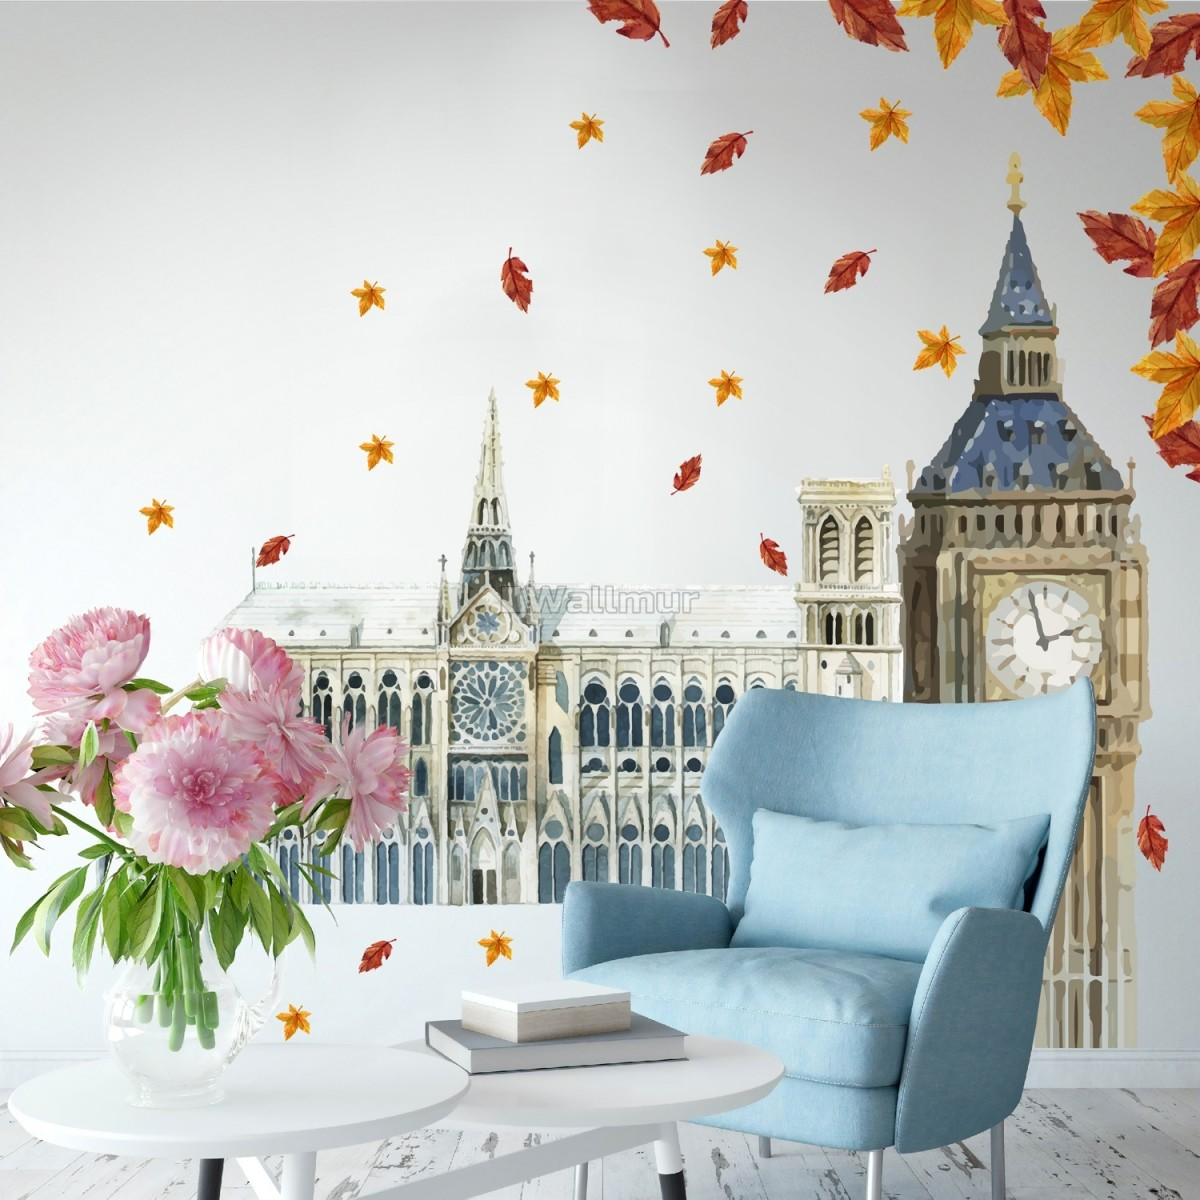 London Big Ben and Westminster with Autumn Leaves Wall Decal Sticker